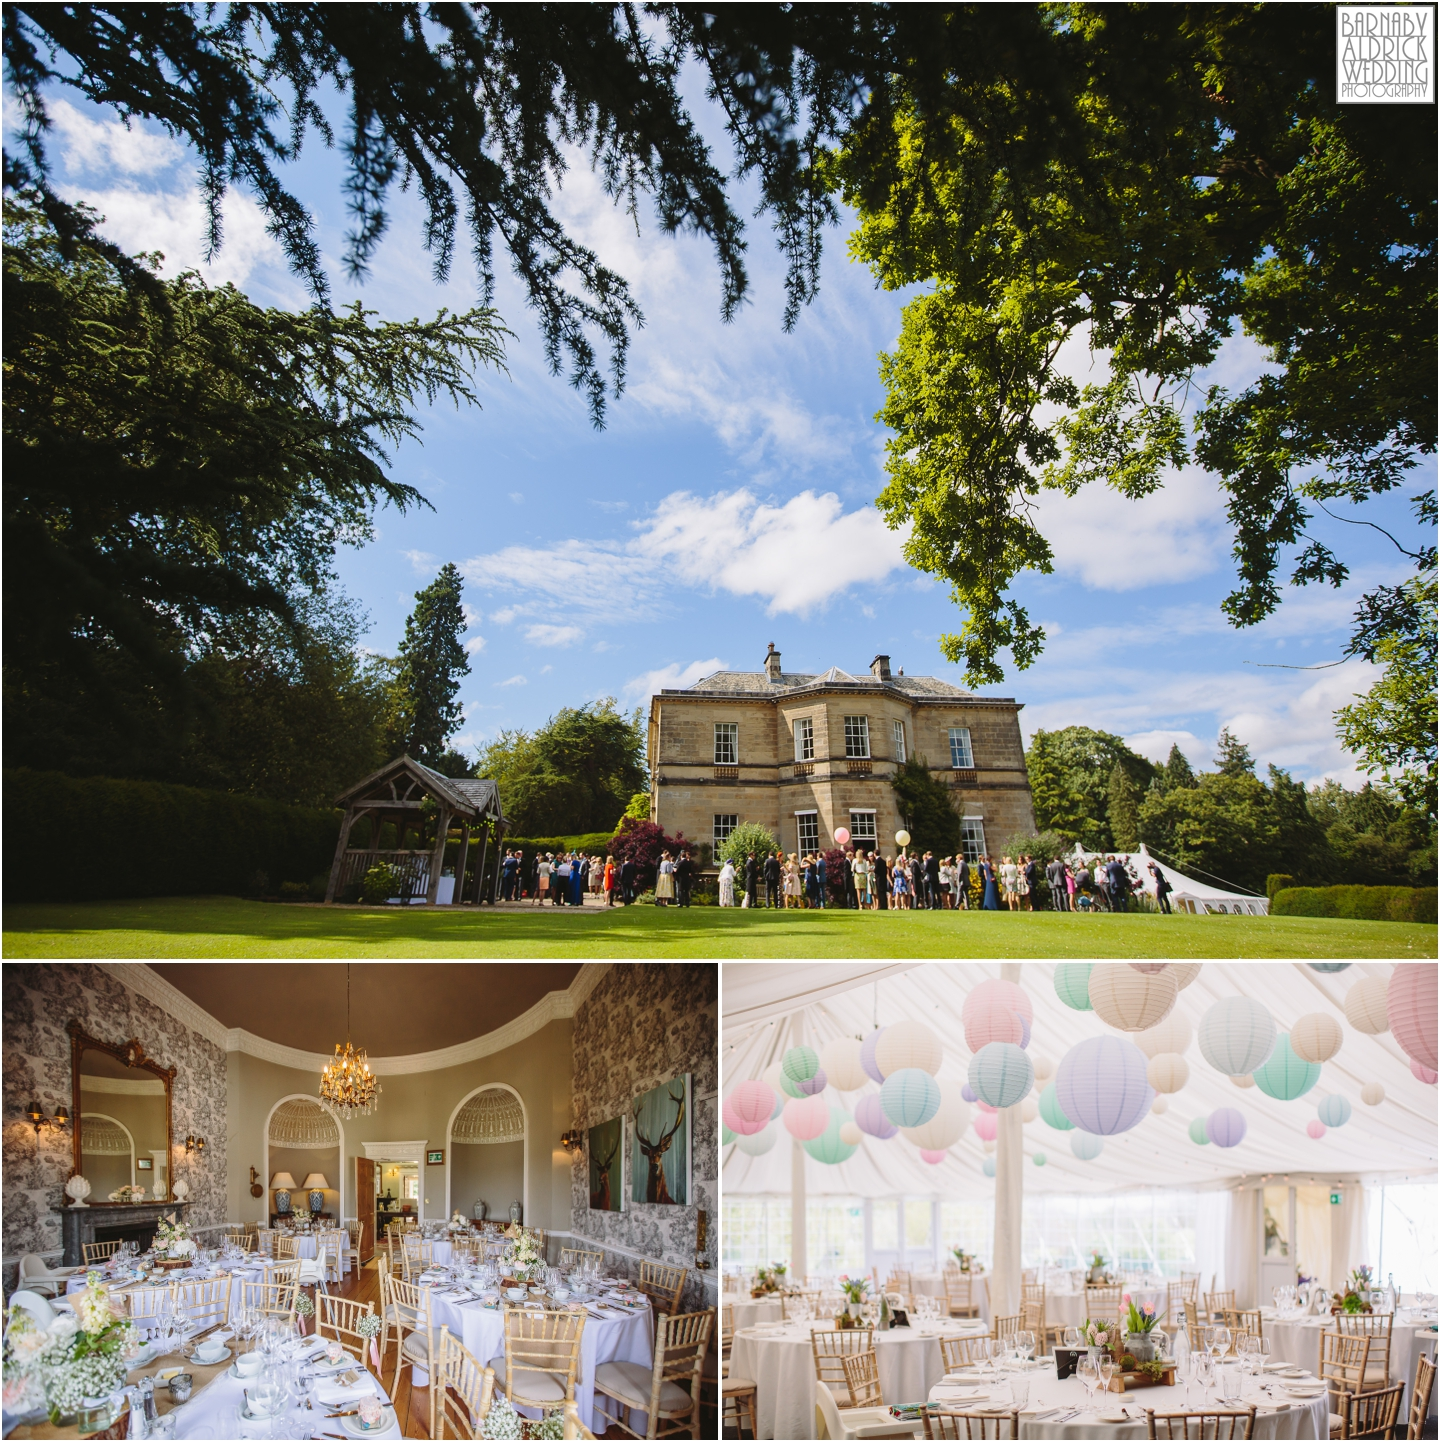 The setting of a lovely country house wedding breakfast at Middleton Lodge